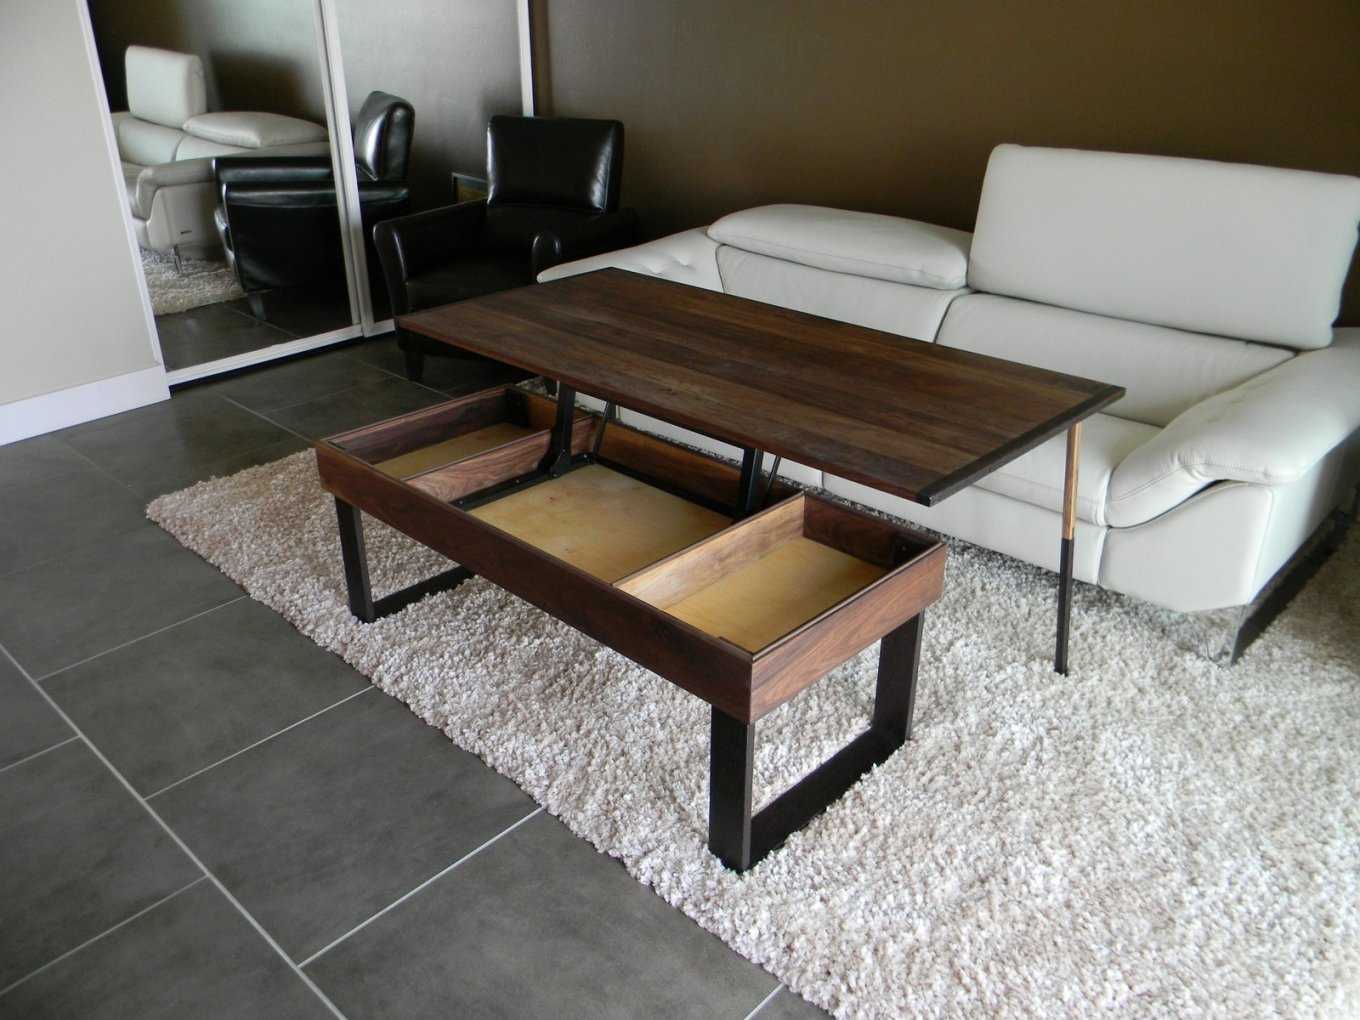 11 Coffee Table That Converts To Dining Table Ikea Inspiration on Coffee Table Inspiration  id=79457